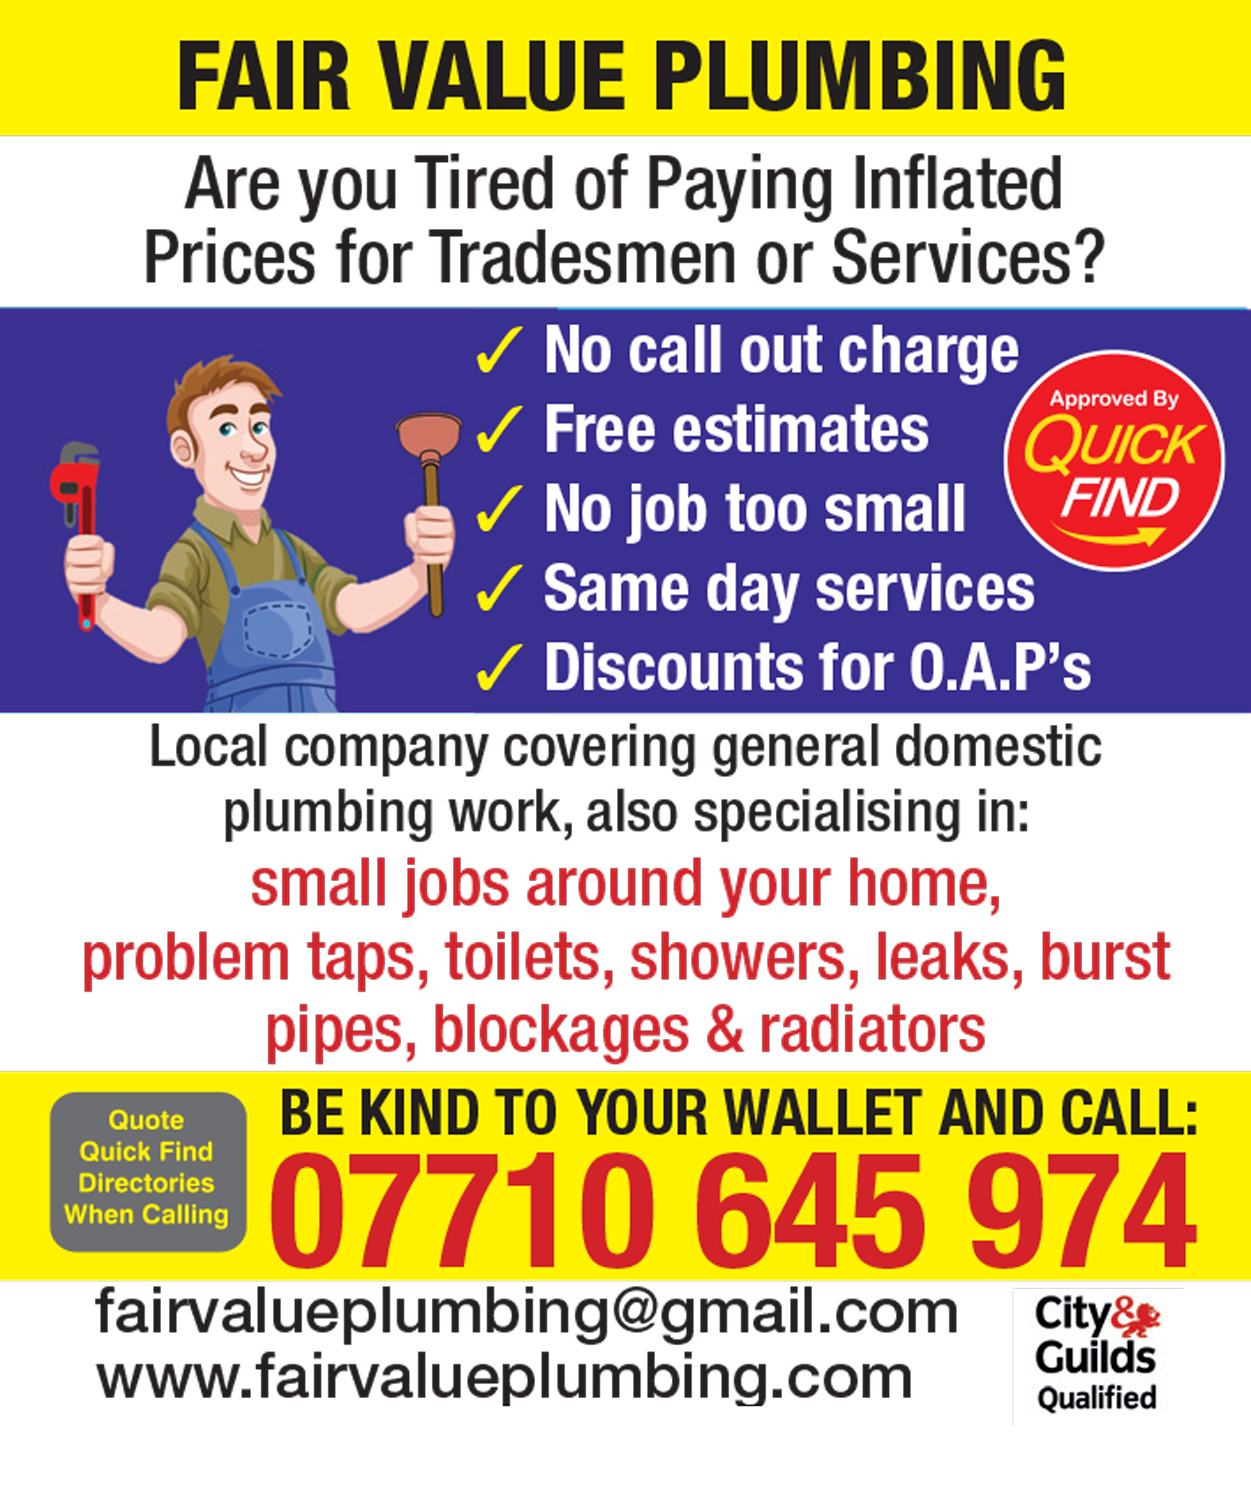 Fair Value Plumbing